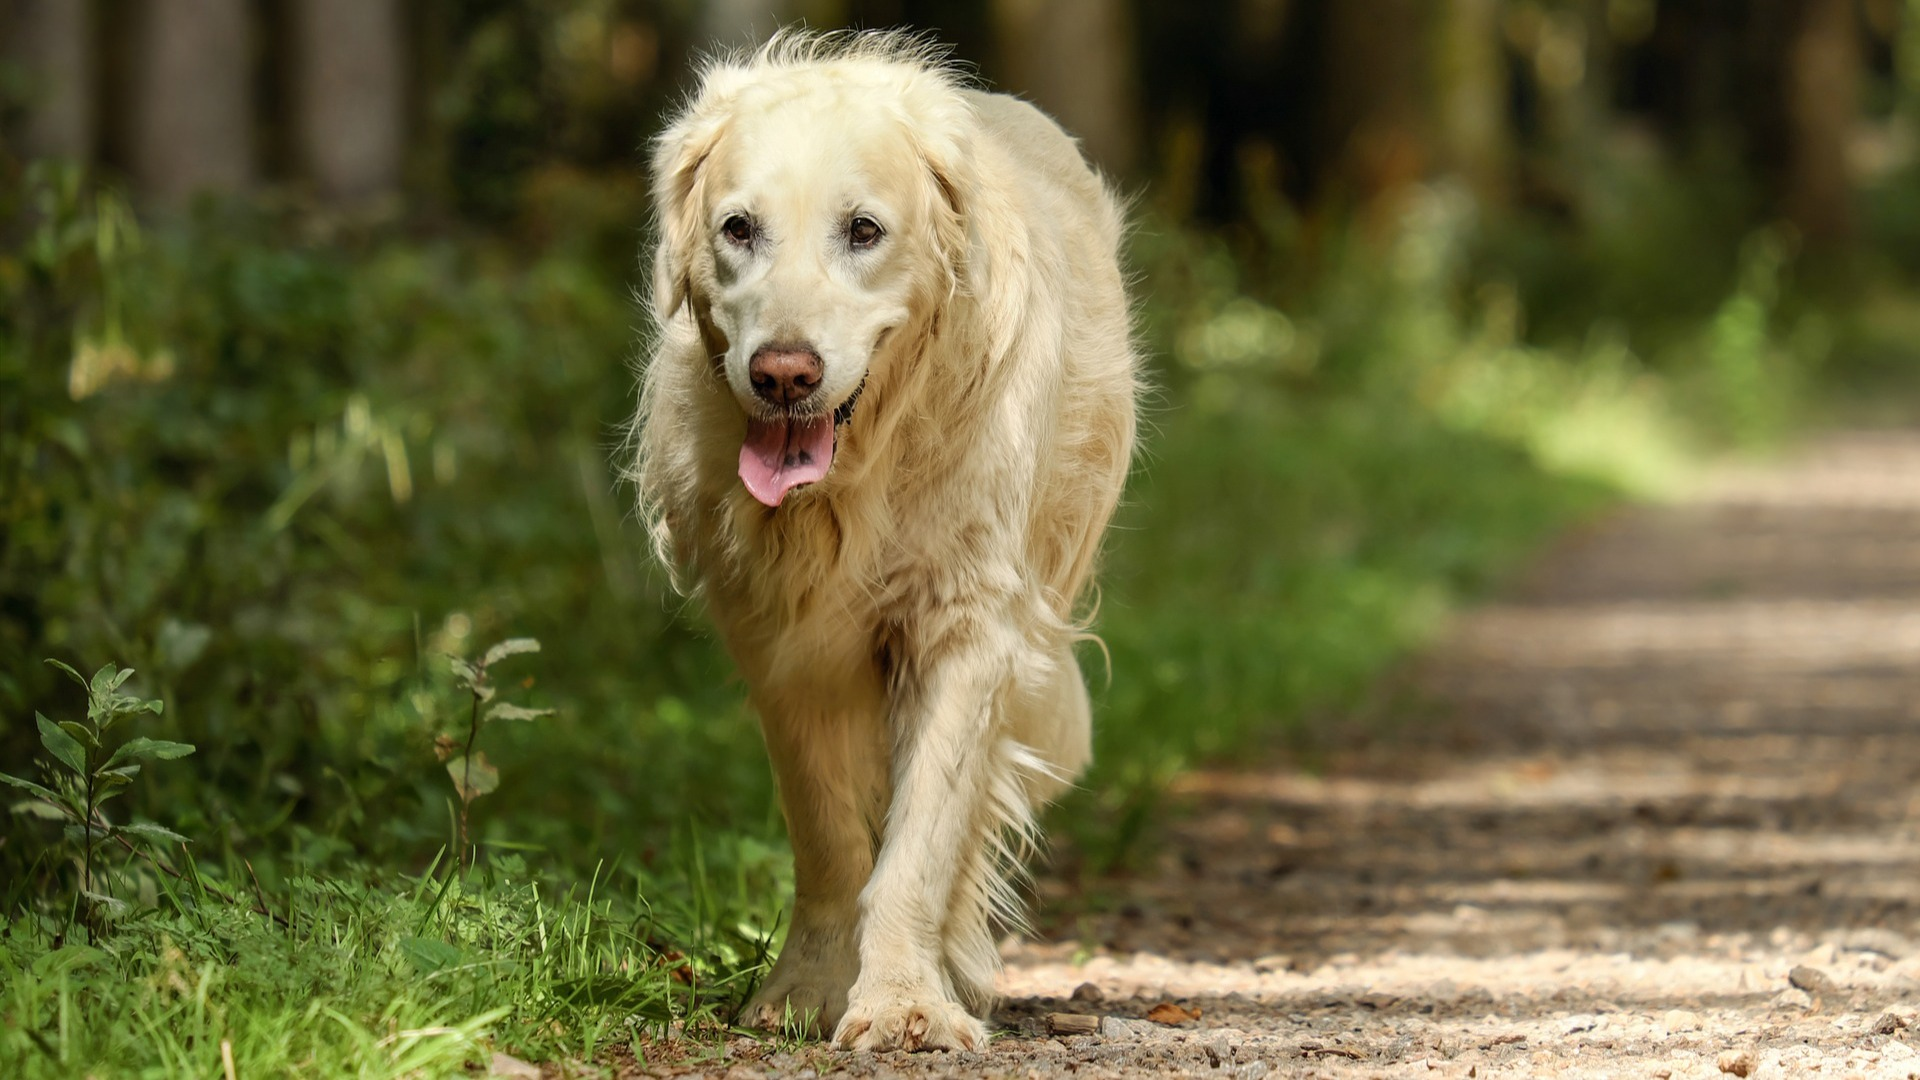 6 Ways to Care for Your Aging Dog